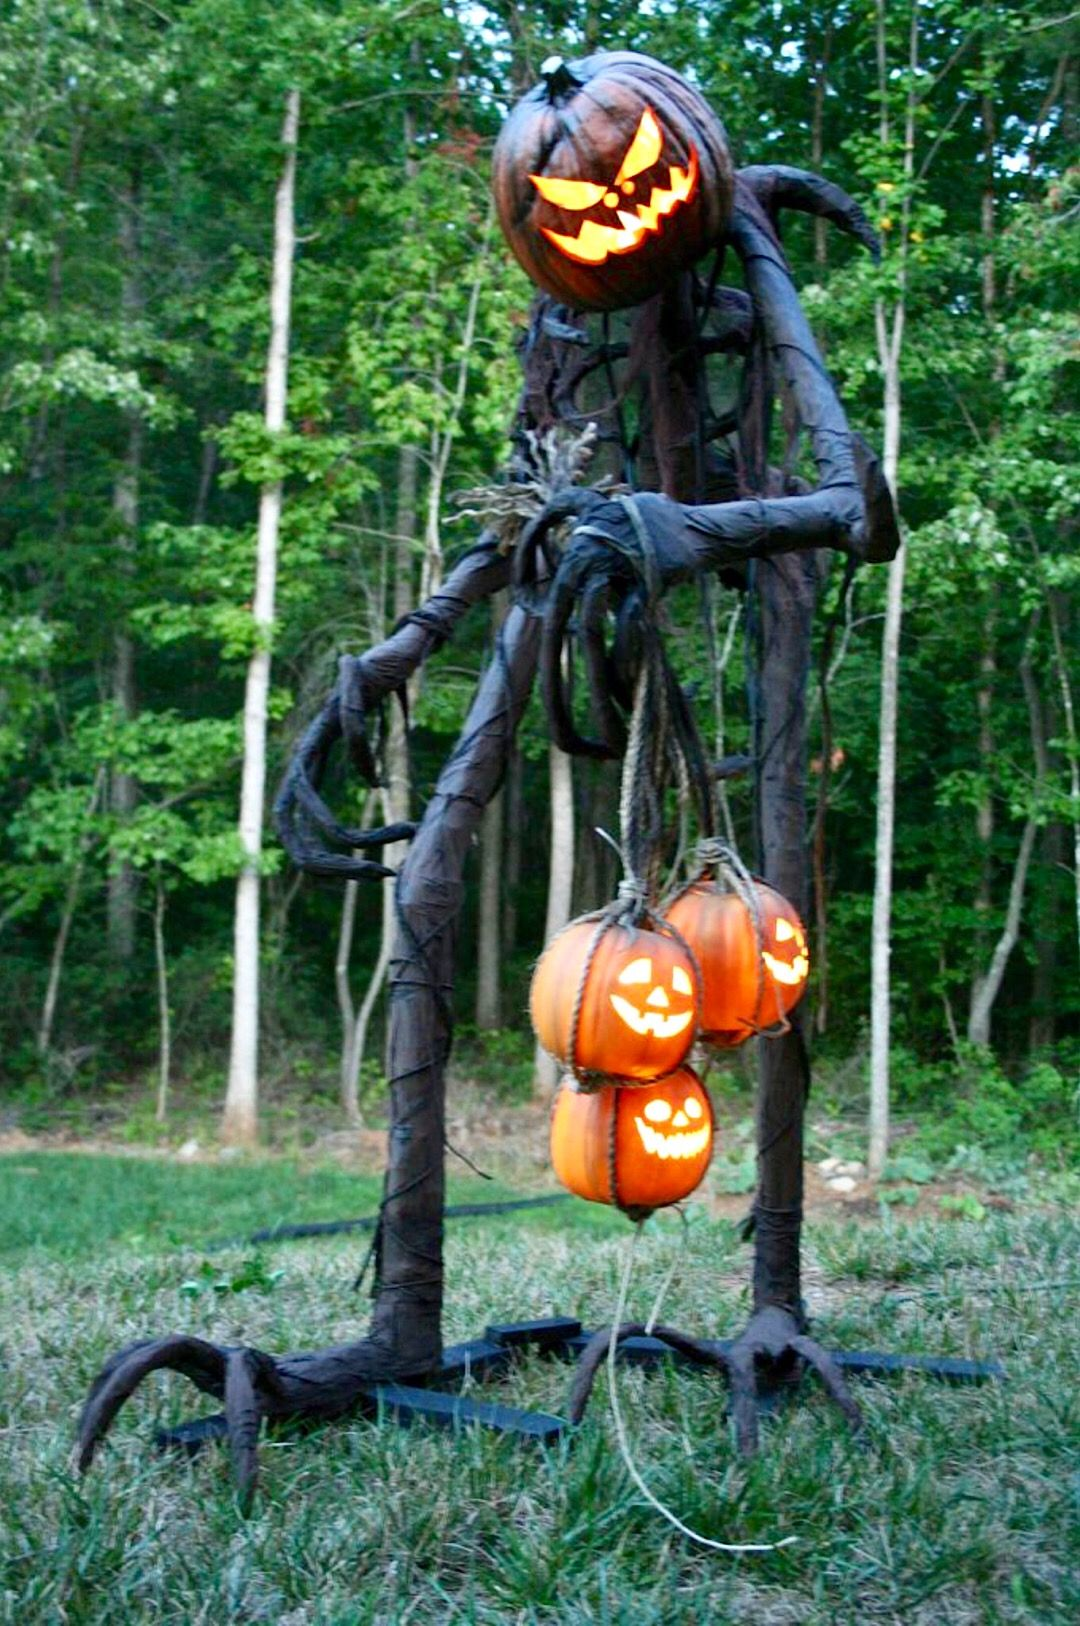 Grim Graham Haunted maze and Halloween ideas - Scary Halloween Yard Decorating Ideas